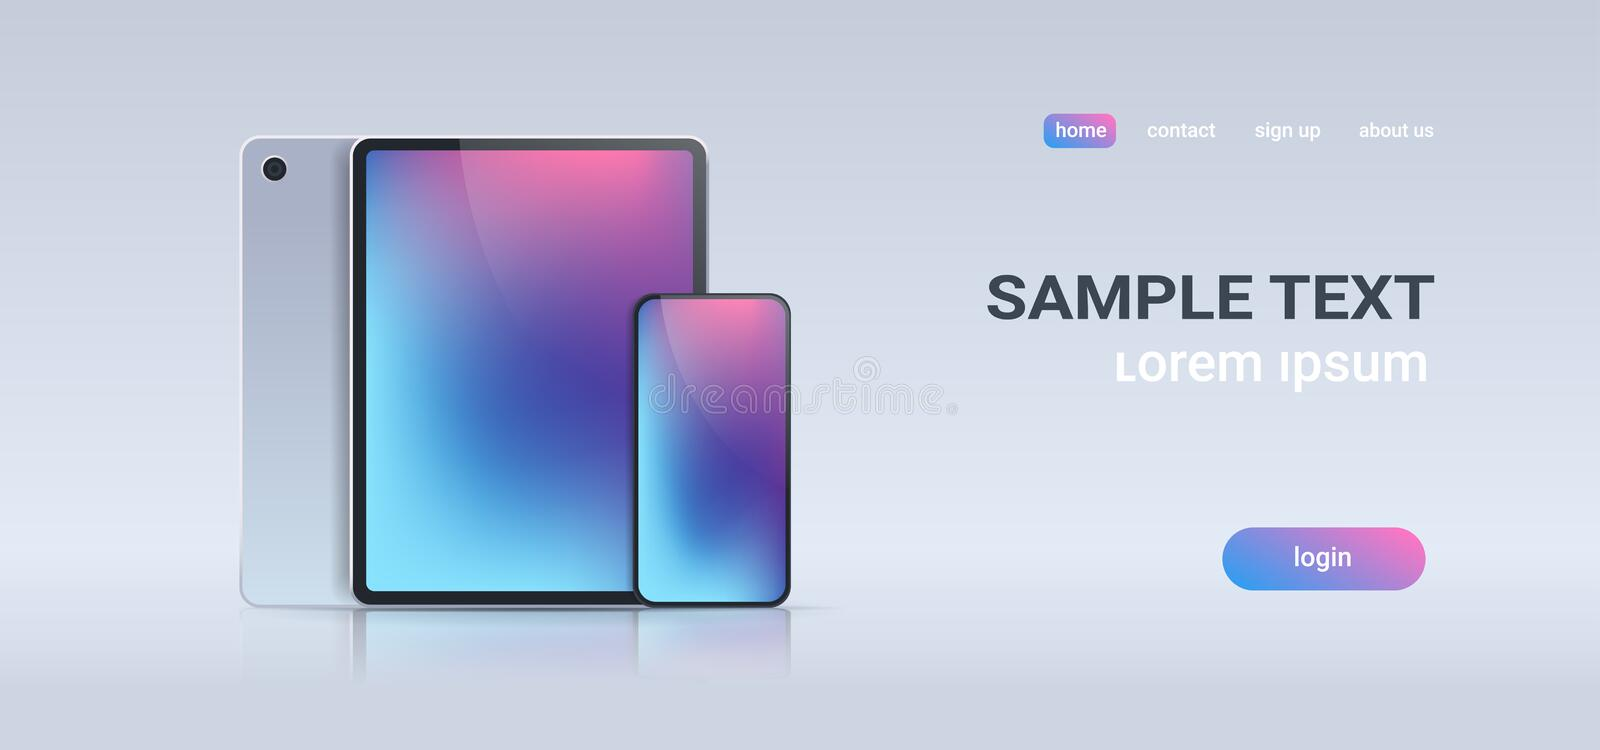 Realistic tablet pc and mobile smartphone with colorful screen on gray background digital technology concept horizontal stock illustration